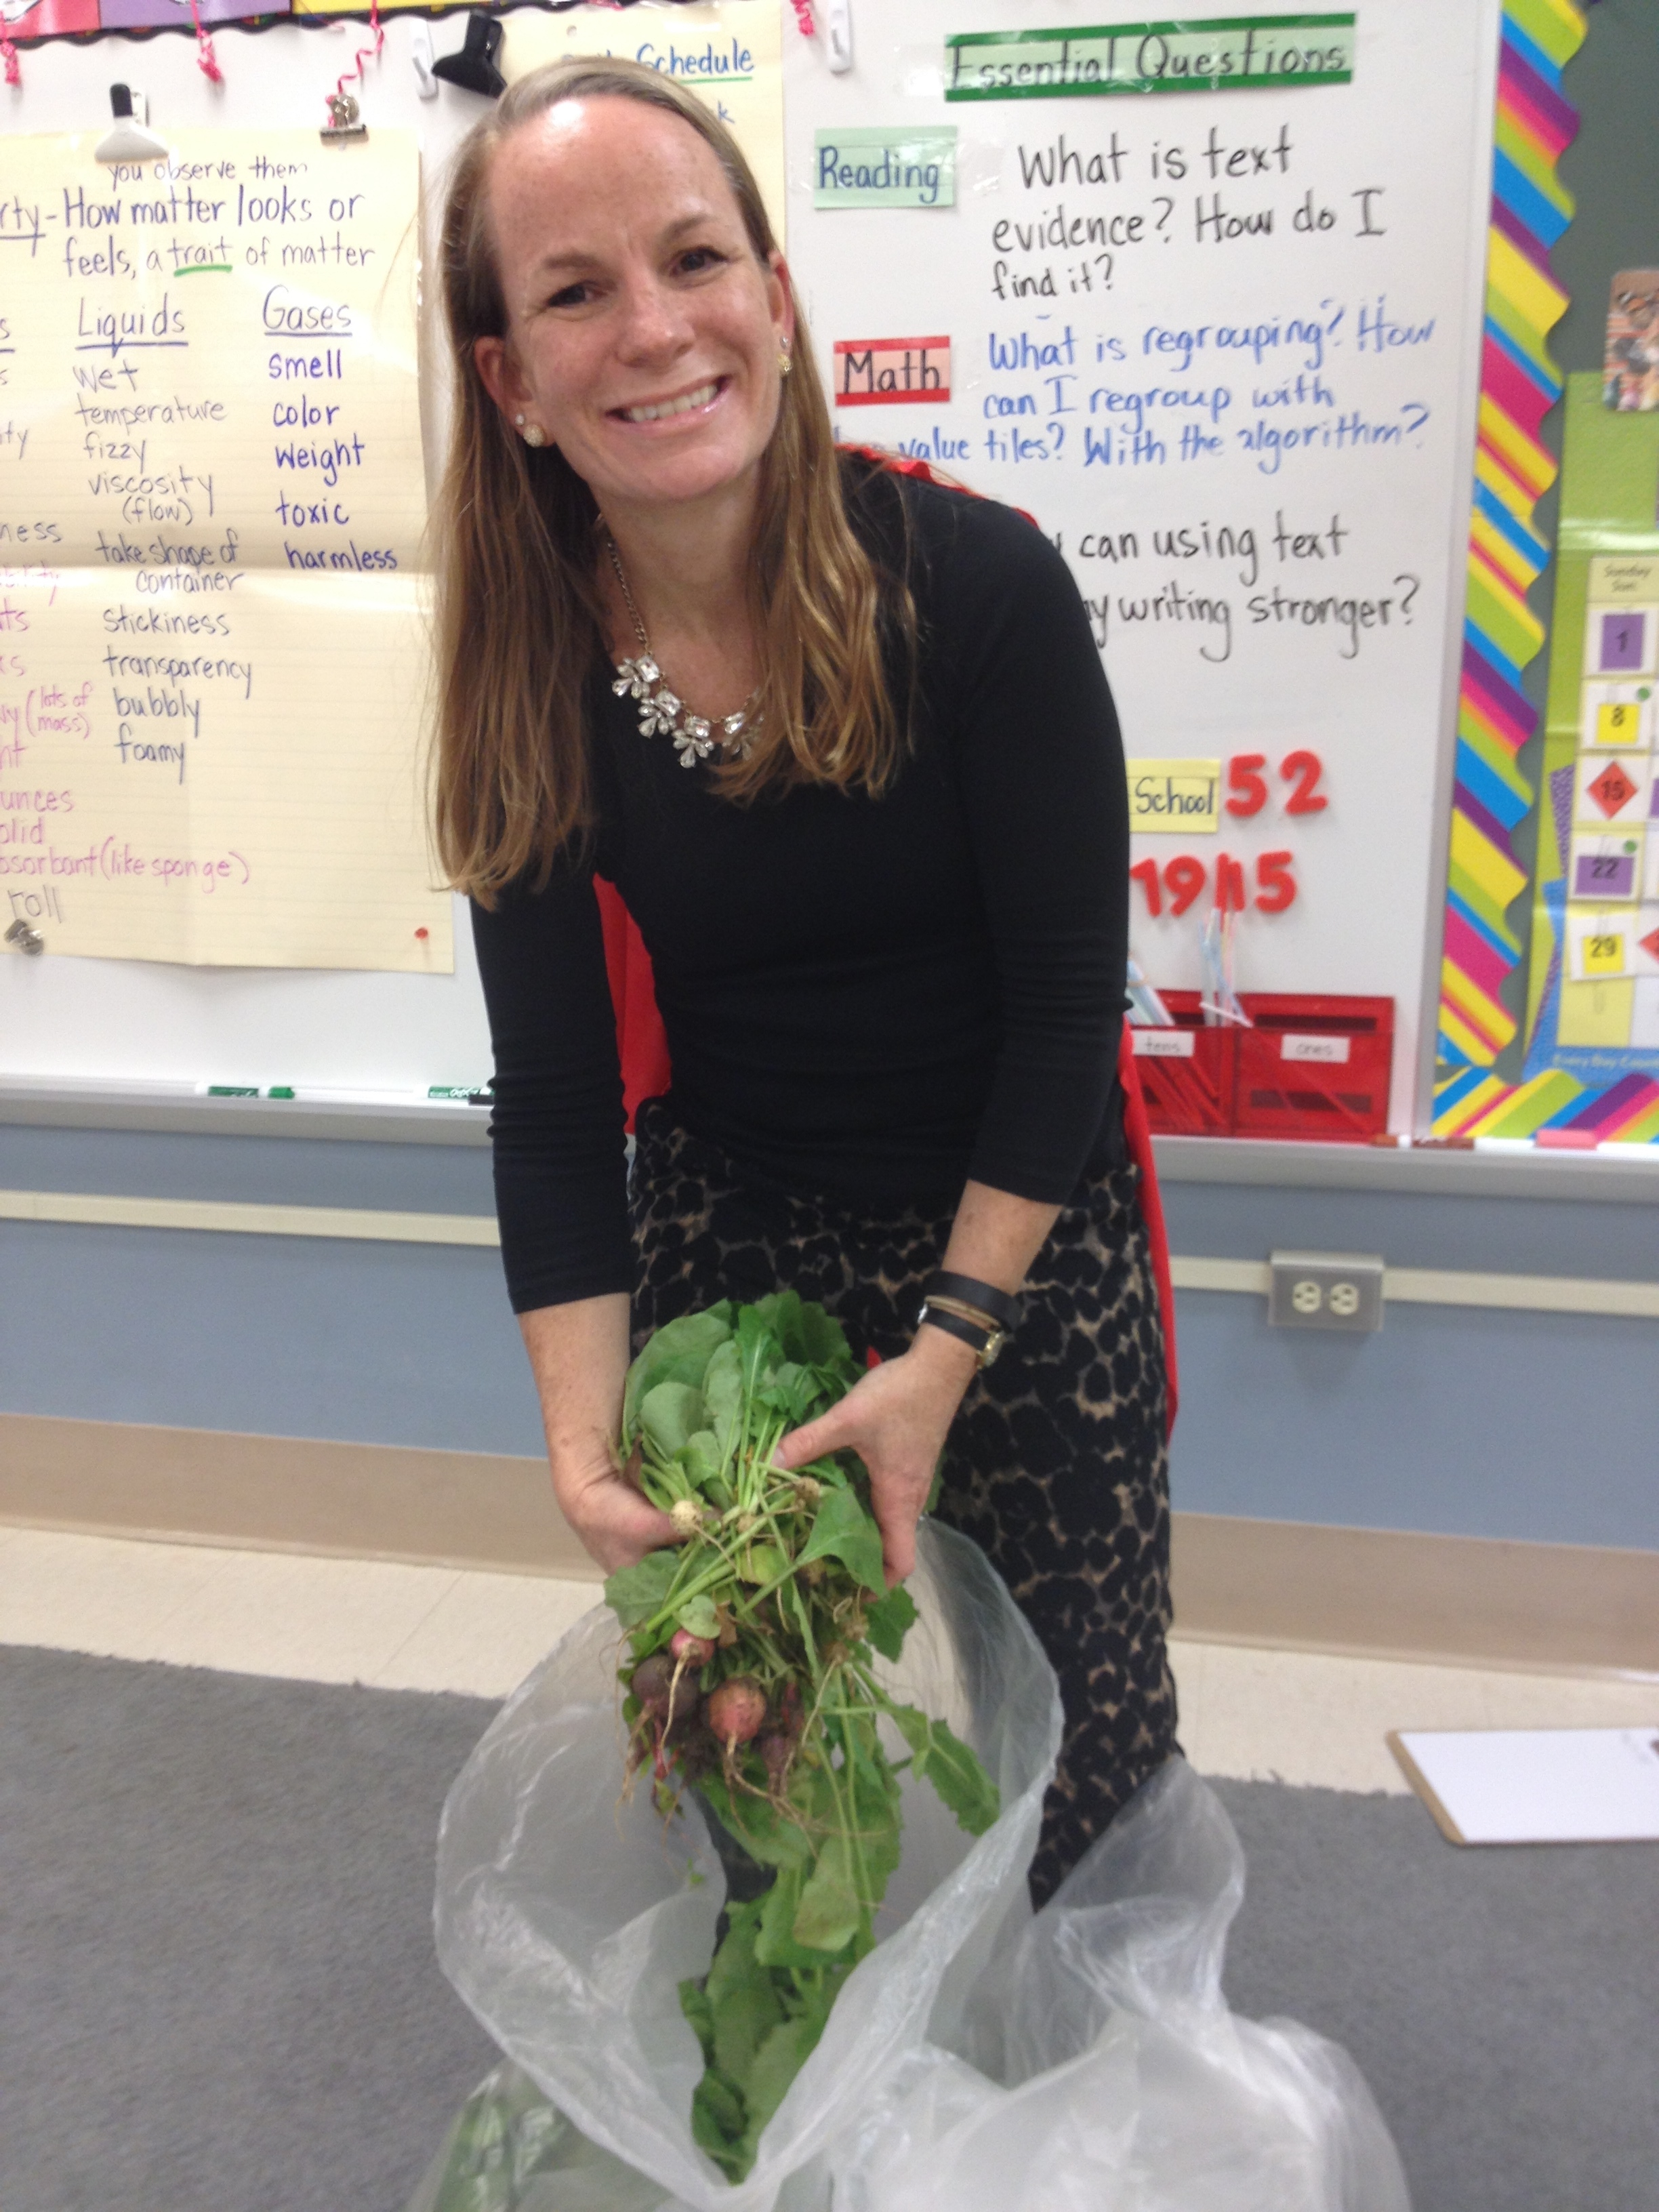 Wendy Turner, teacher and Green Team leader, at Mt. Pleasant Elementary School, a 2015 Green Ribbon Award winner and participant in Green Building United's Delaware Pathways to Green Schools program.